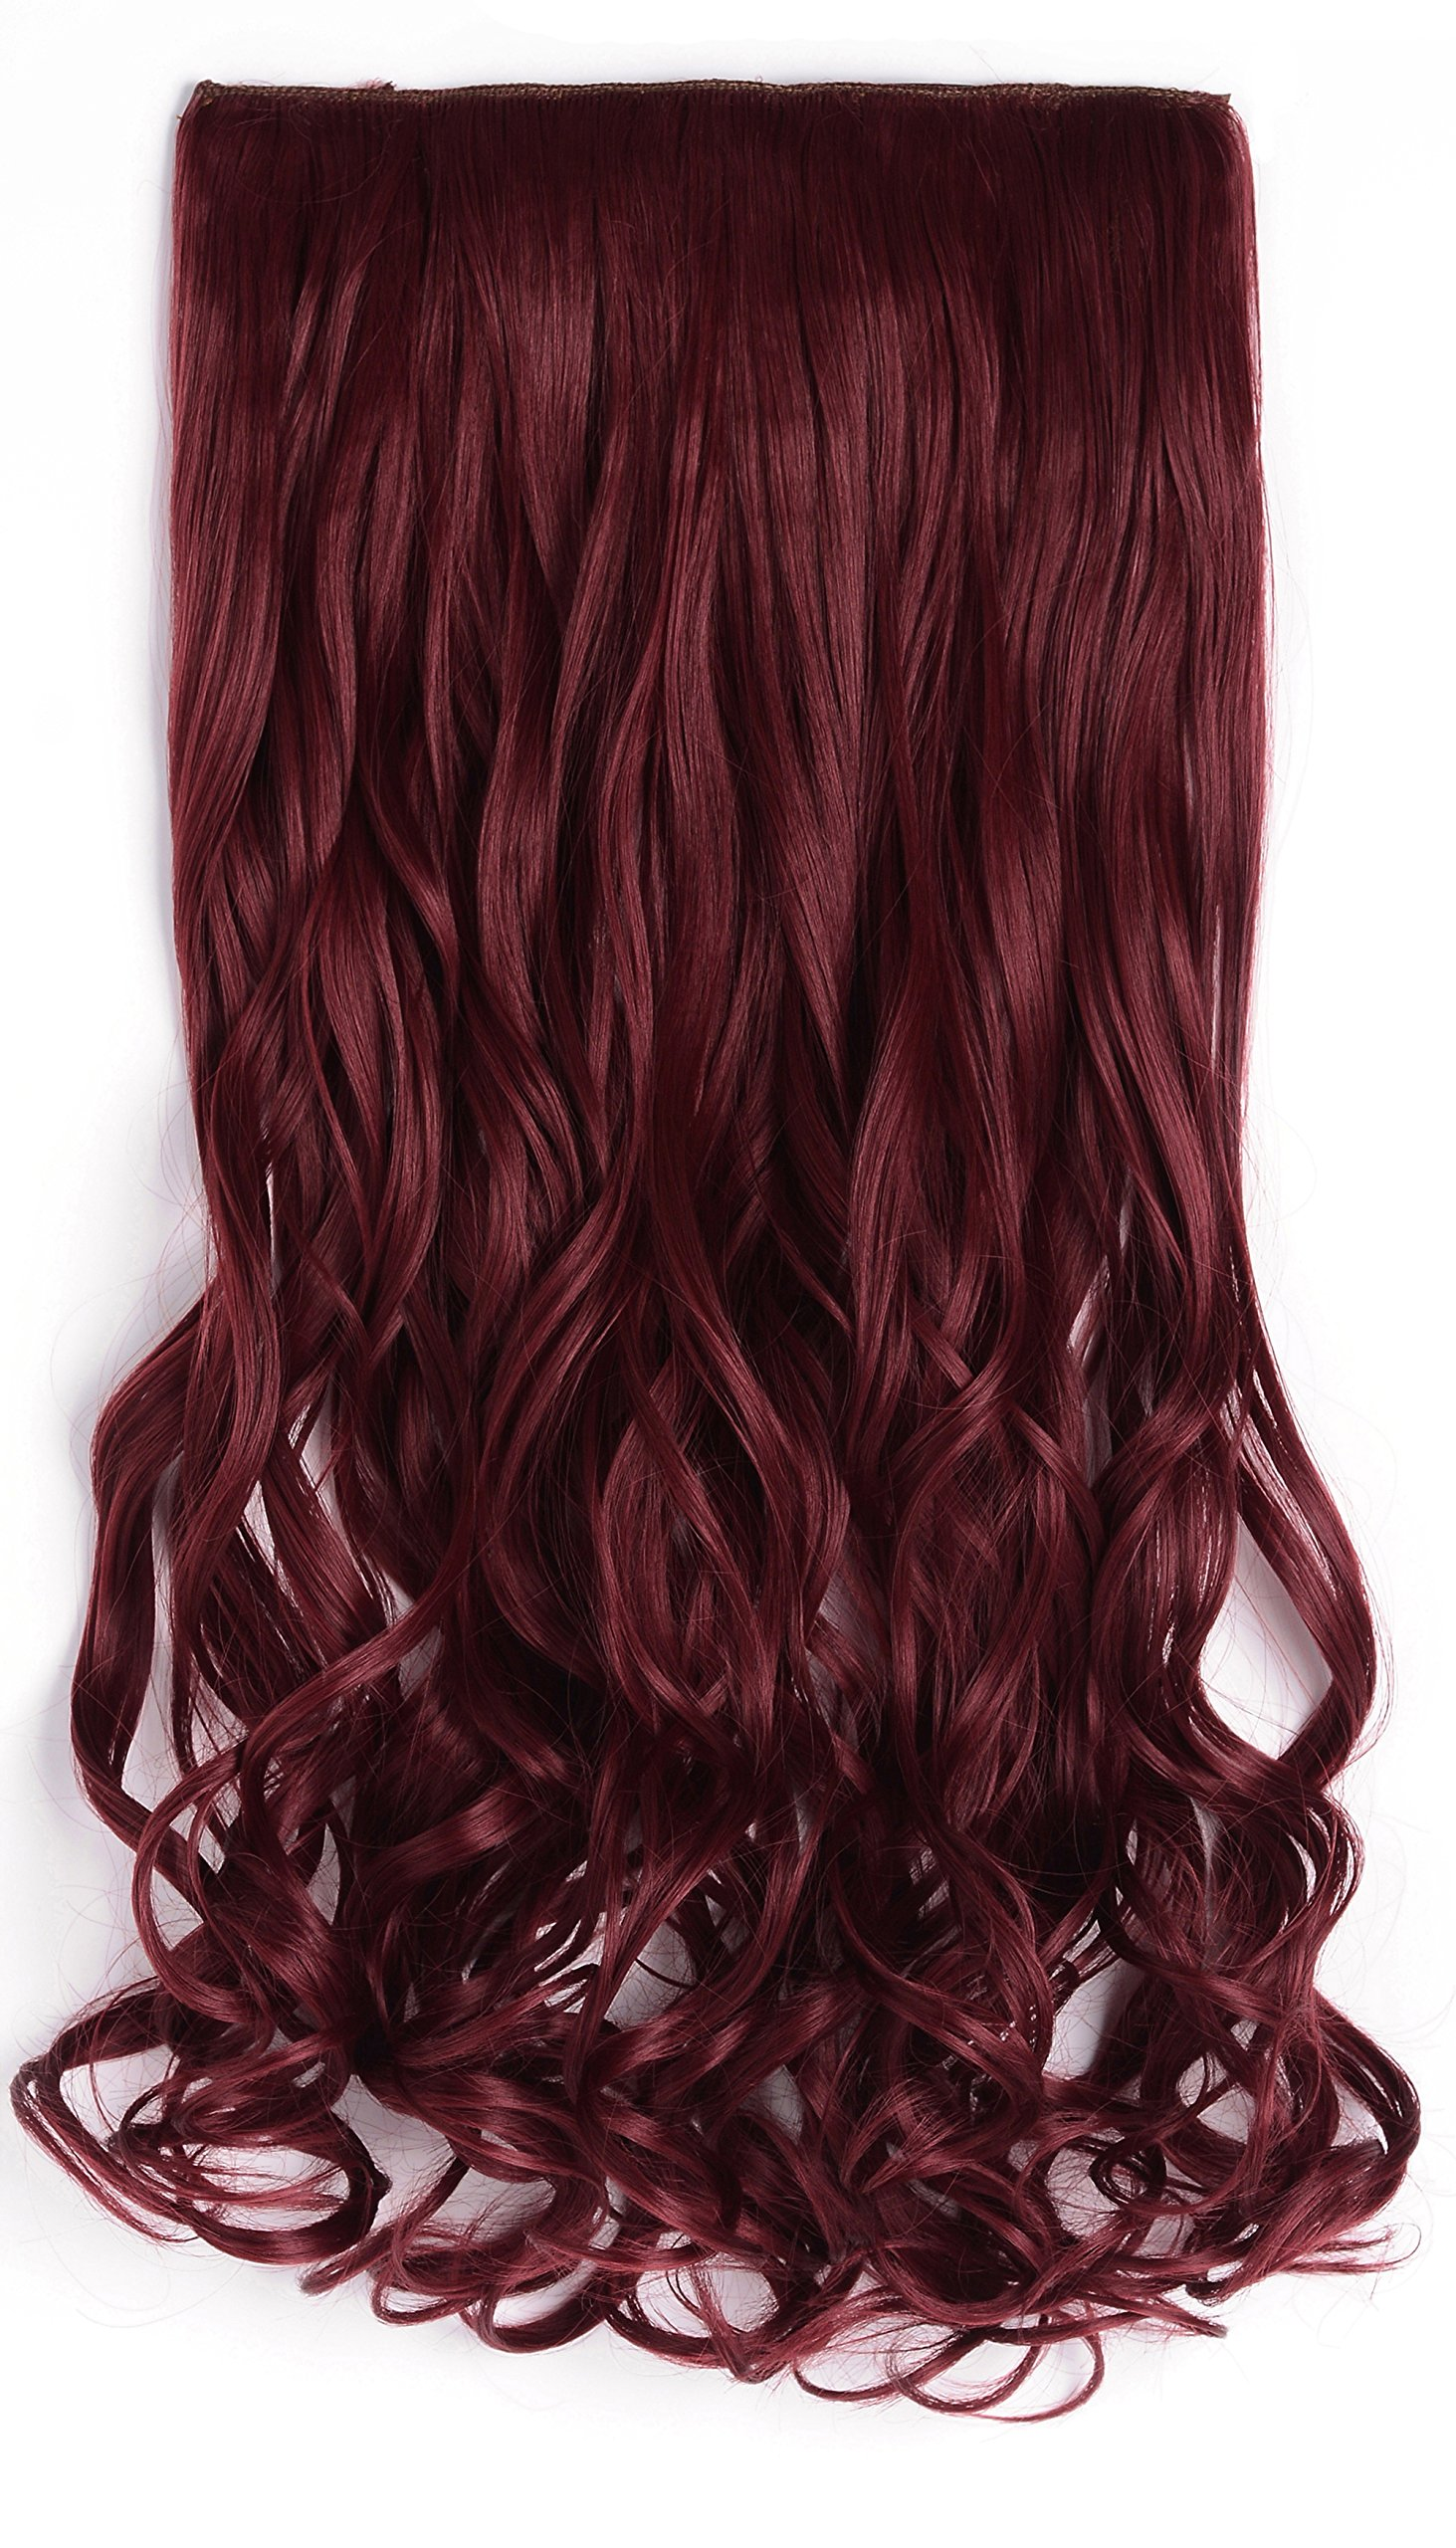 Amazon onedor 20 curly full head clip in synthetic hair onedor 20 curly 34 full head synthetic hair extensions clip onin pmusecretfo Image collections